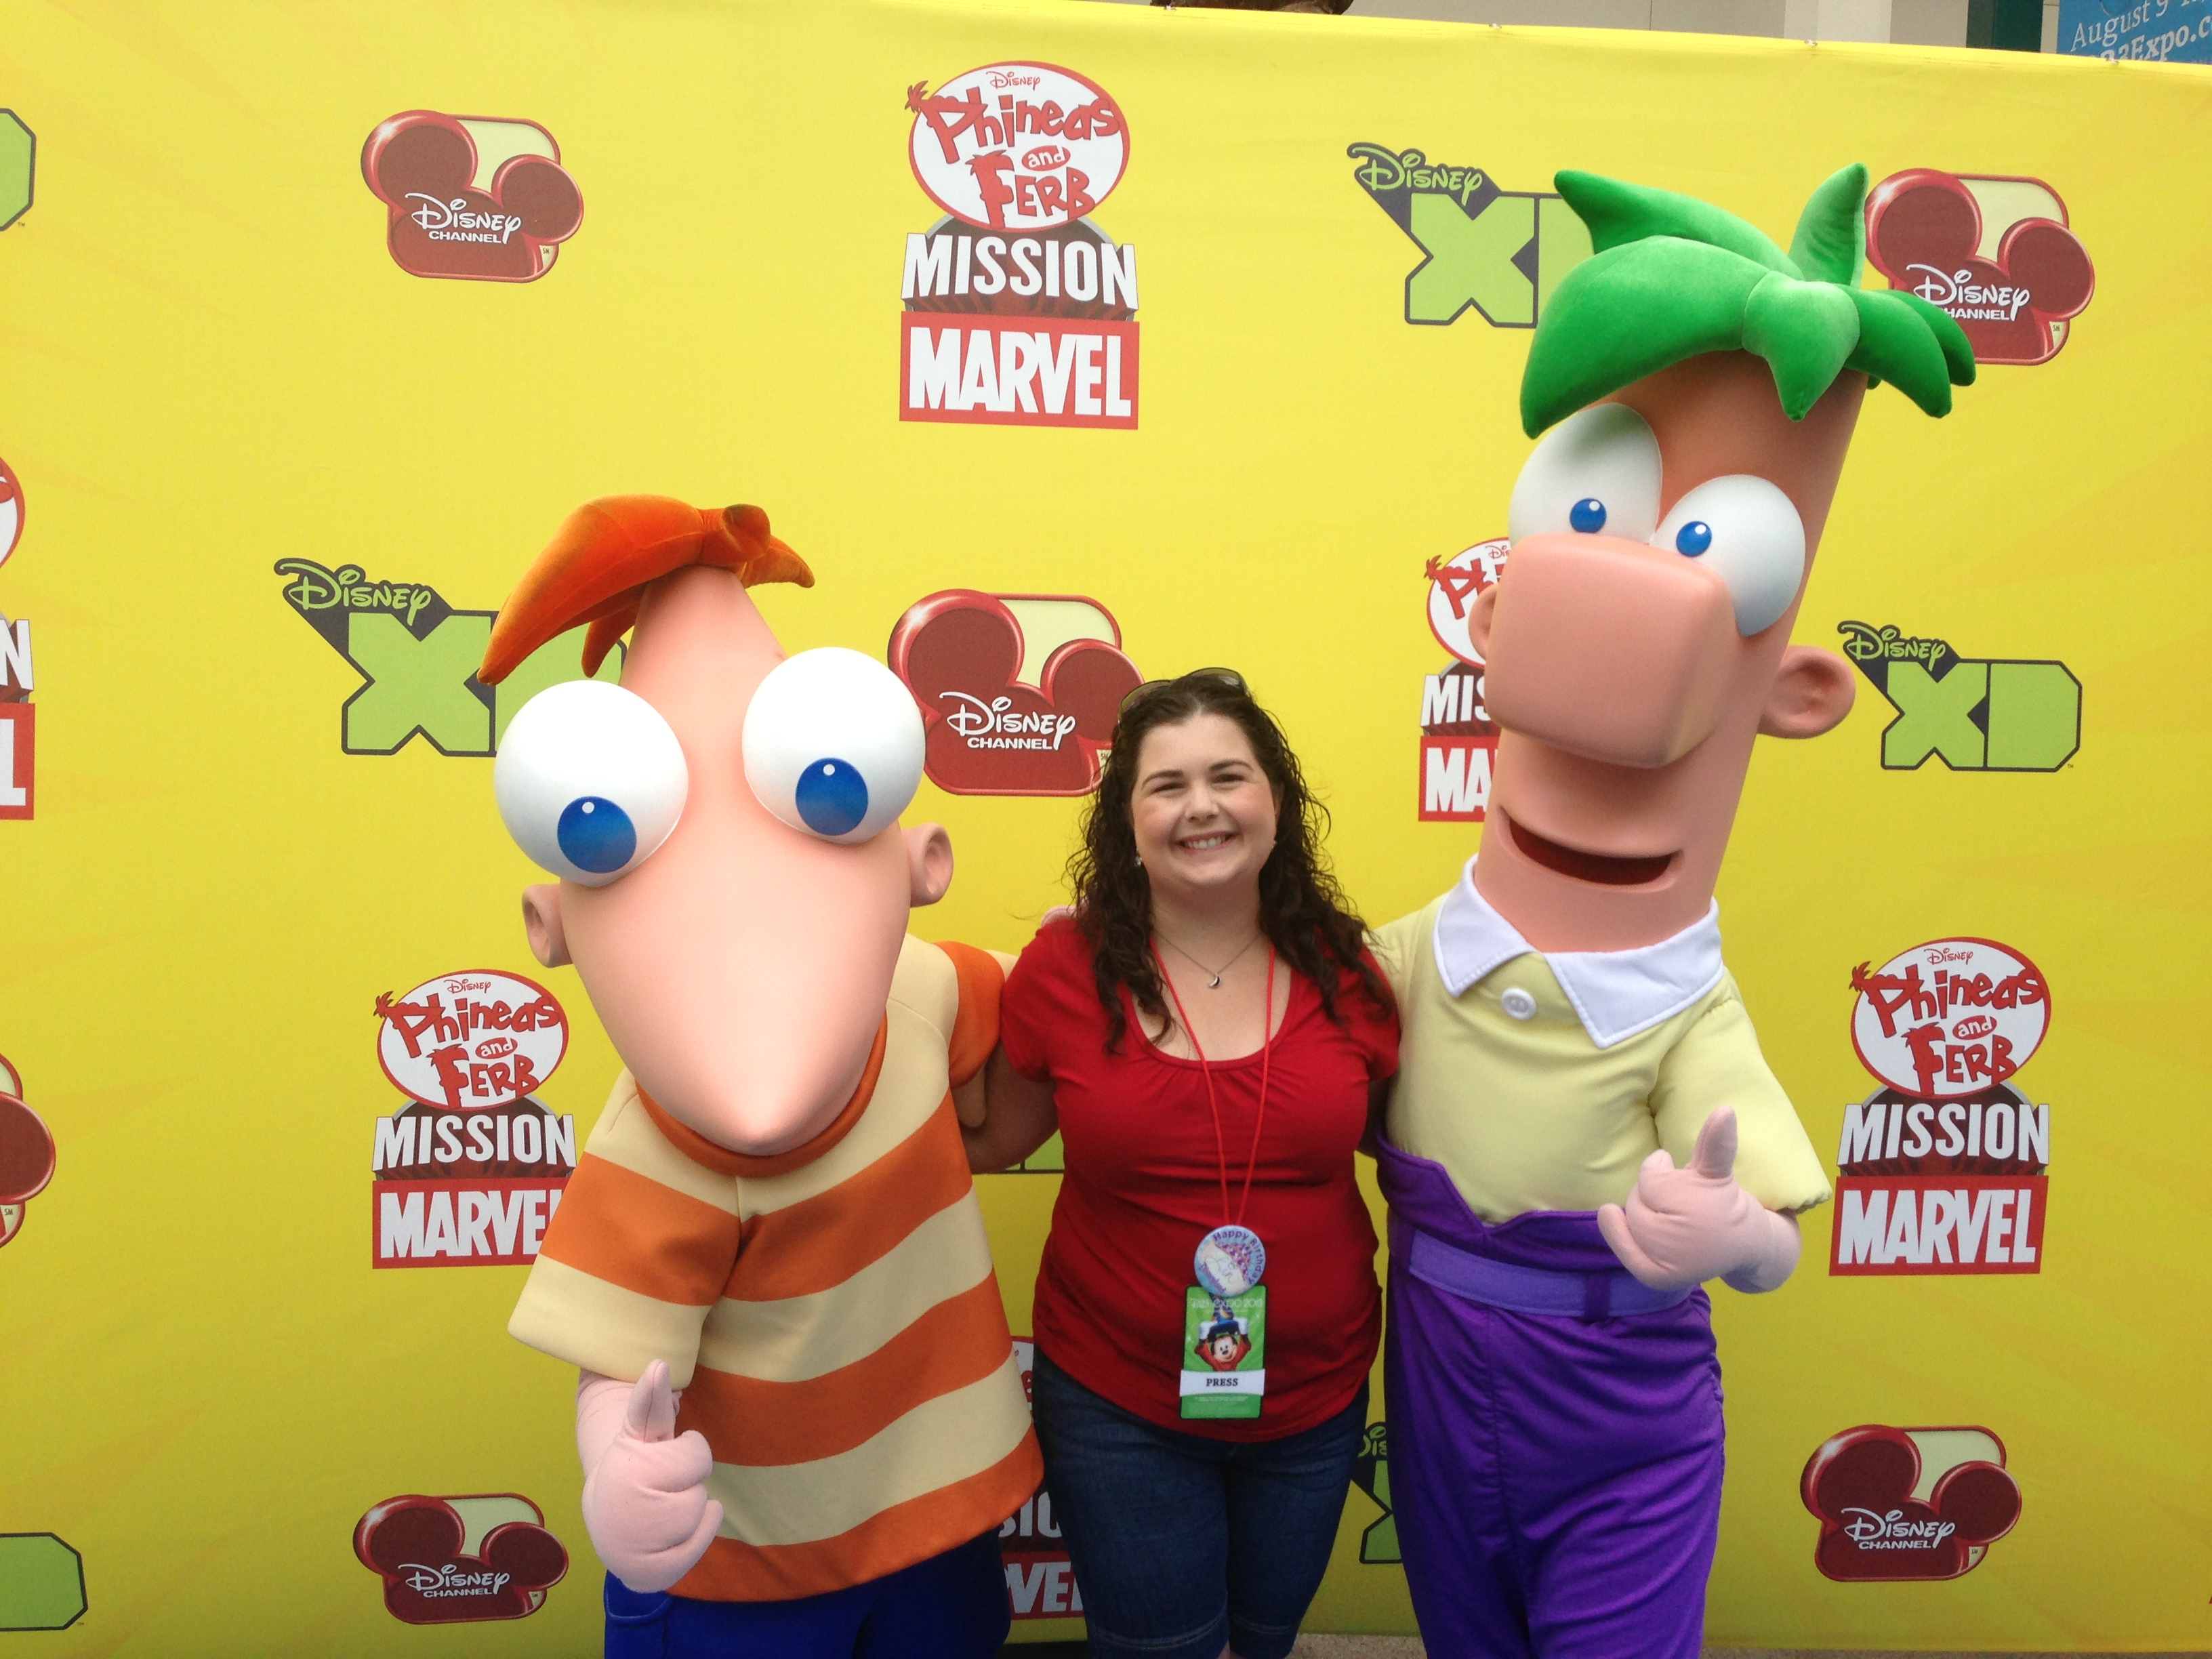 Just hanging out with a couple of good guys at the D23 Expo 2013.